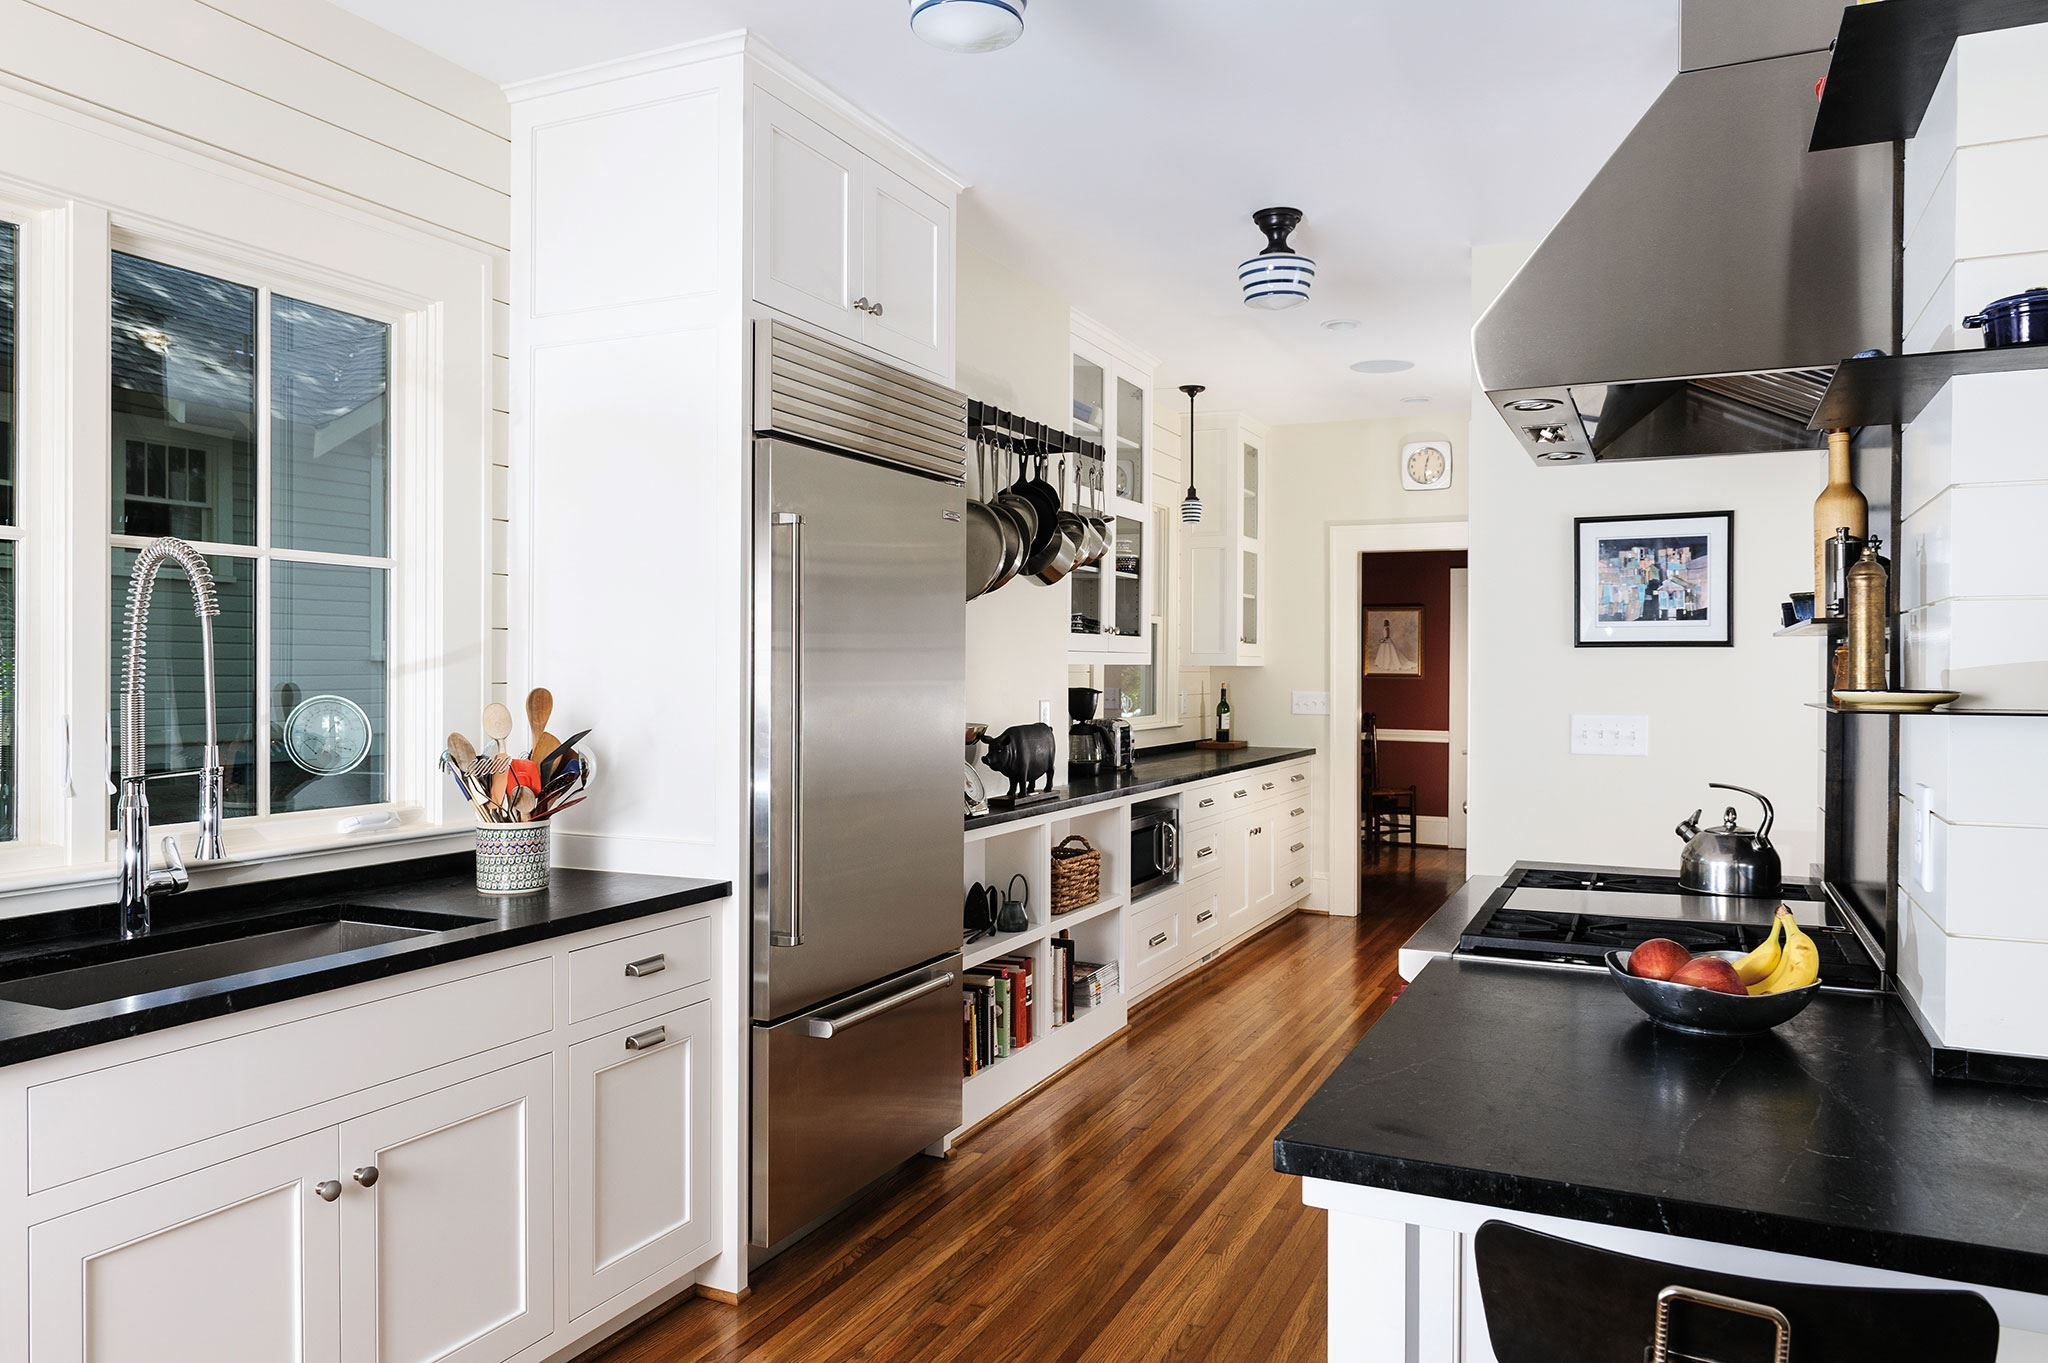 Be inspired by A Kitchen That Fits